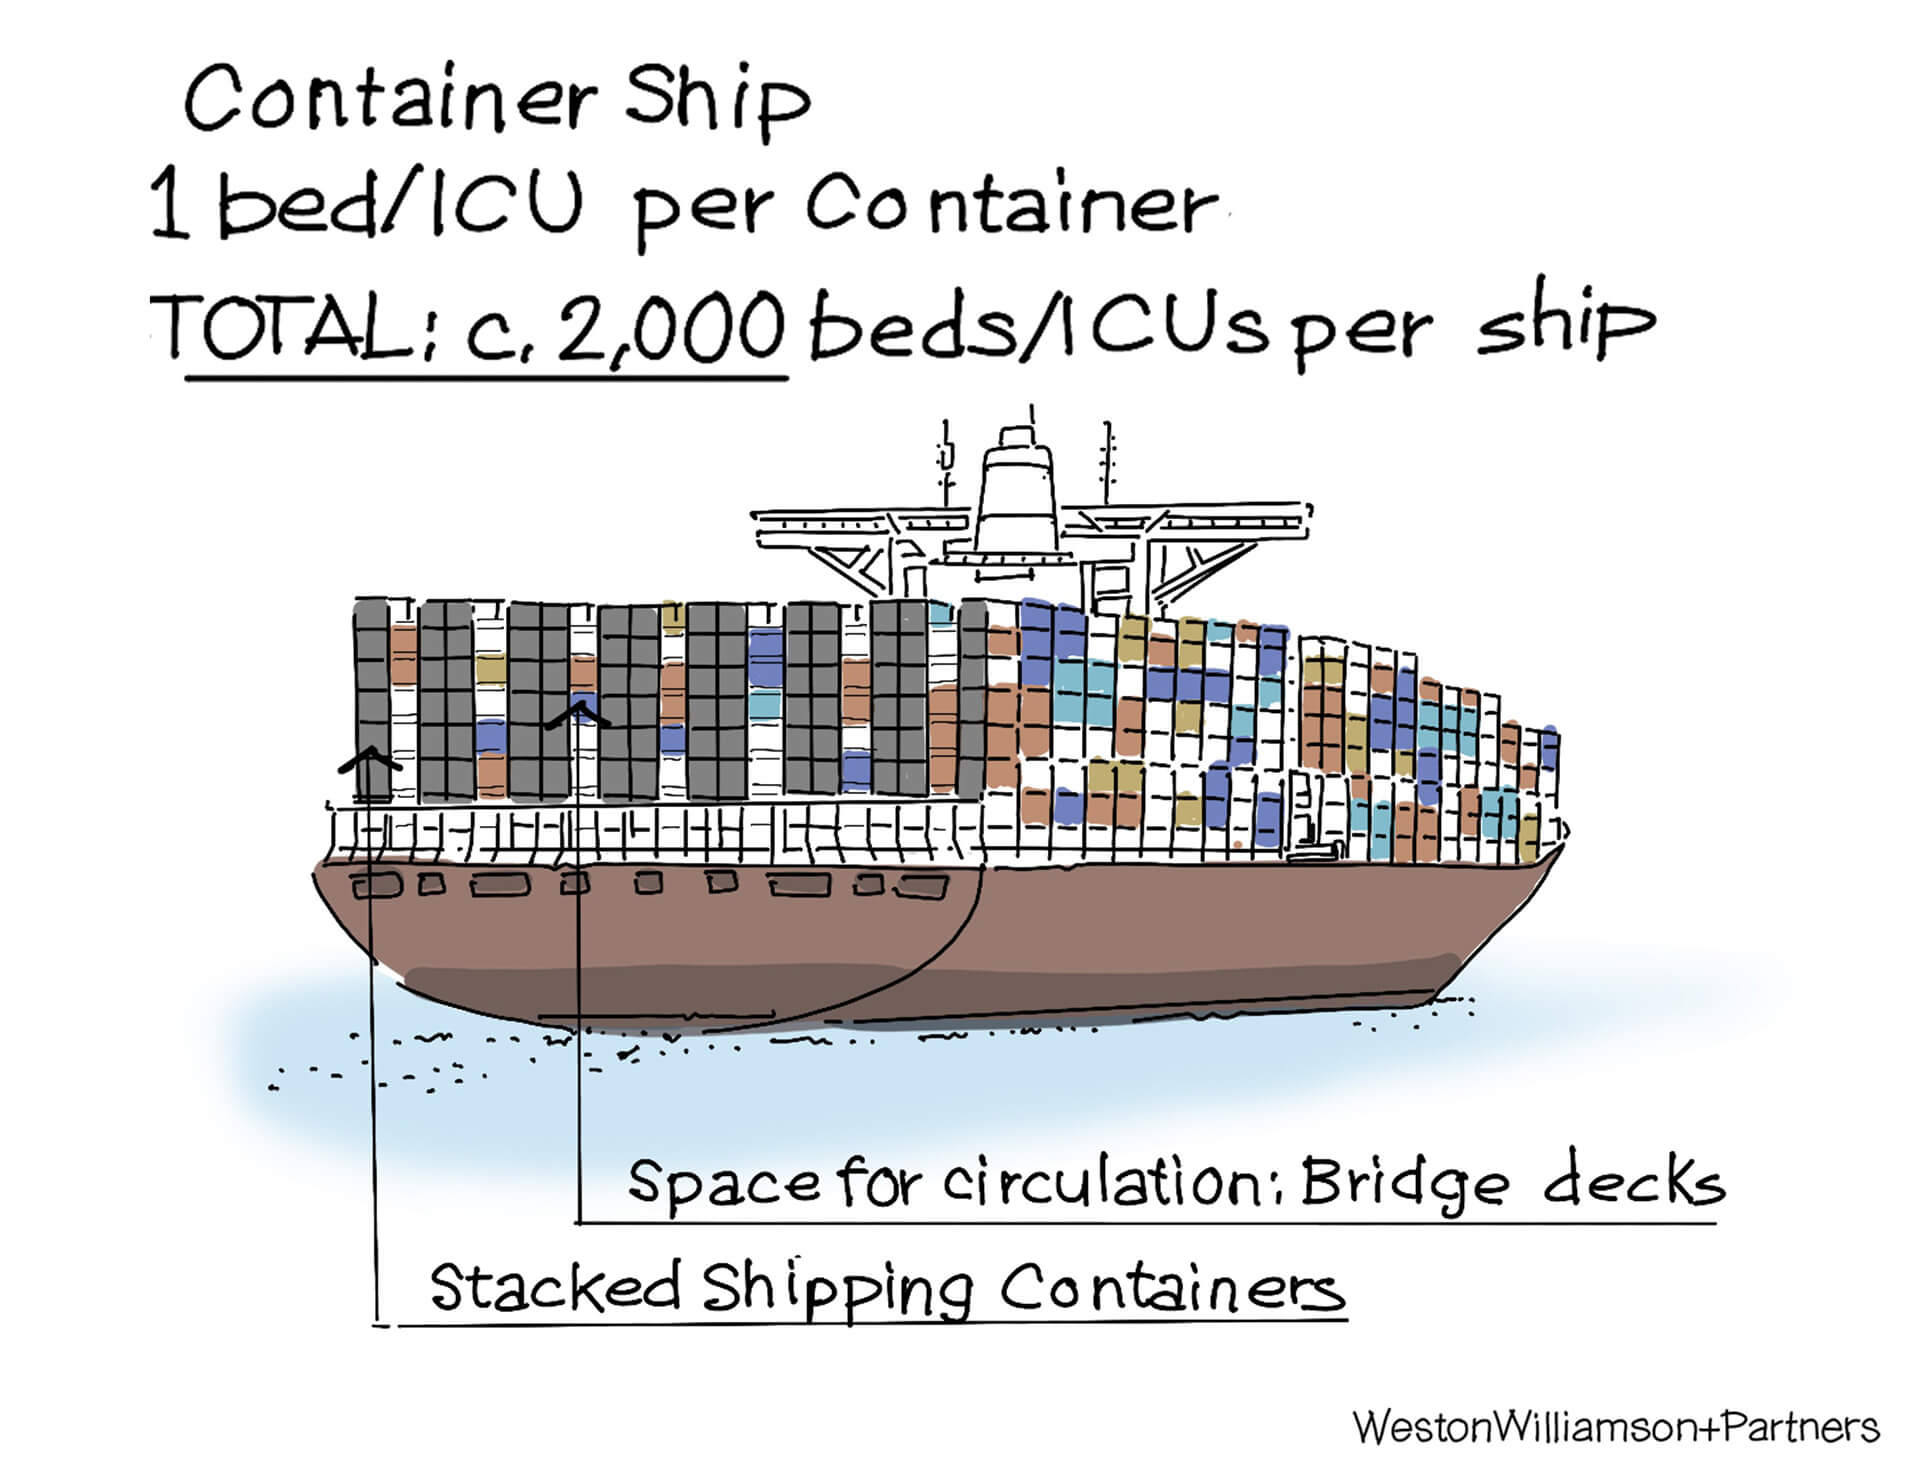 Each container can host one ICU and a bed, which equals 2,000 beds and ICU's per ship | Container ship hospitals by Weston Williamson + Partners | STIRworld